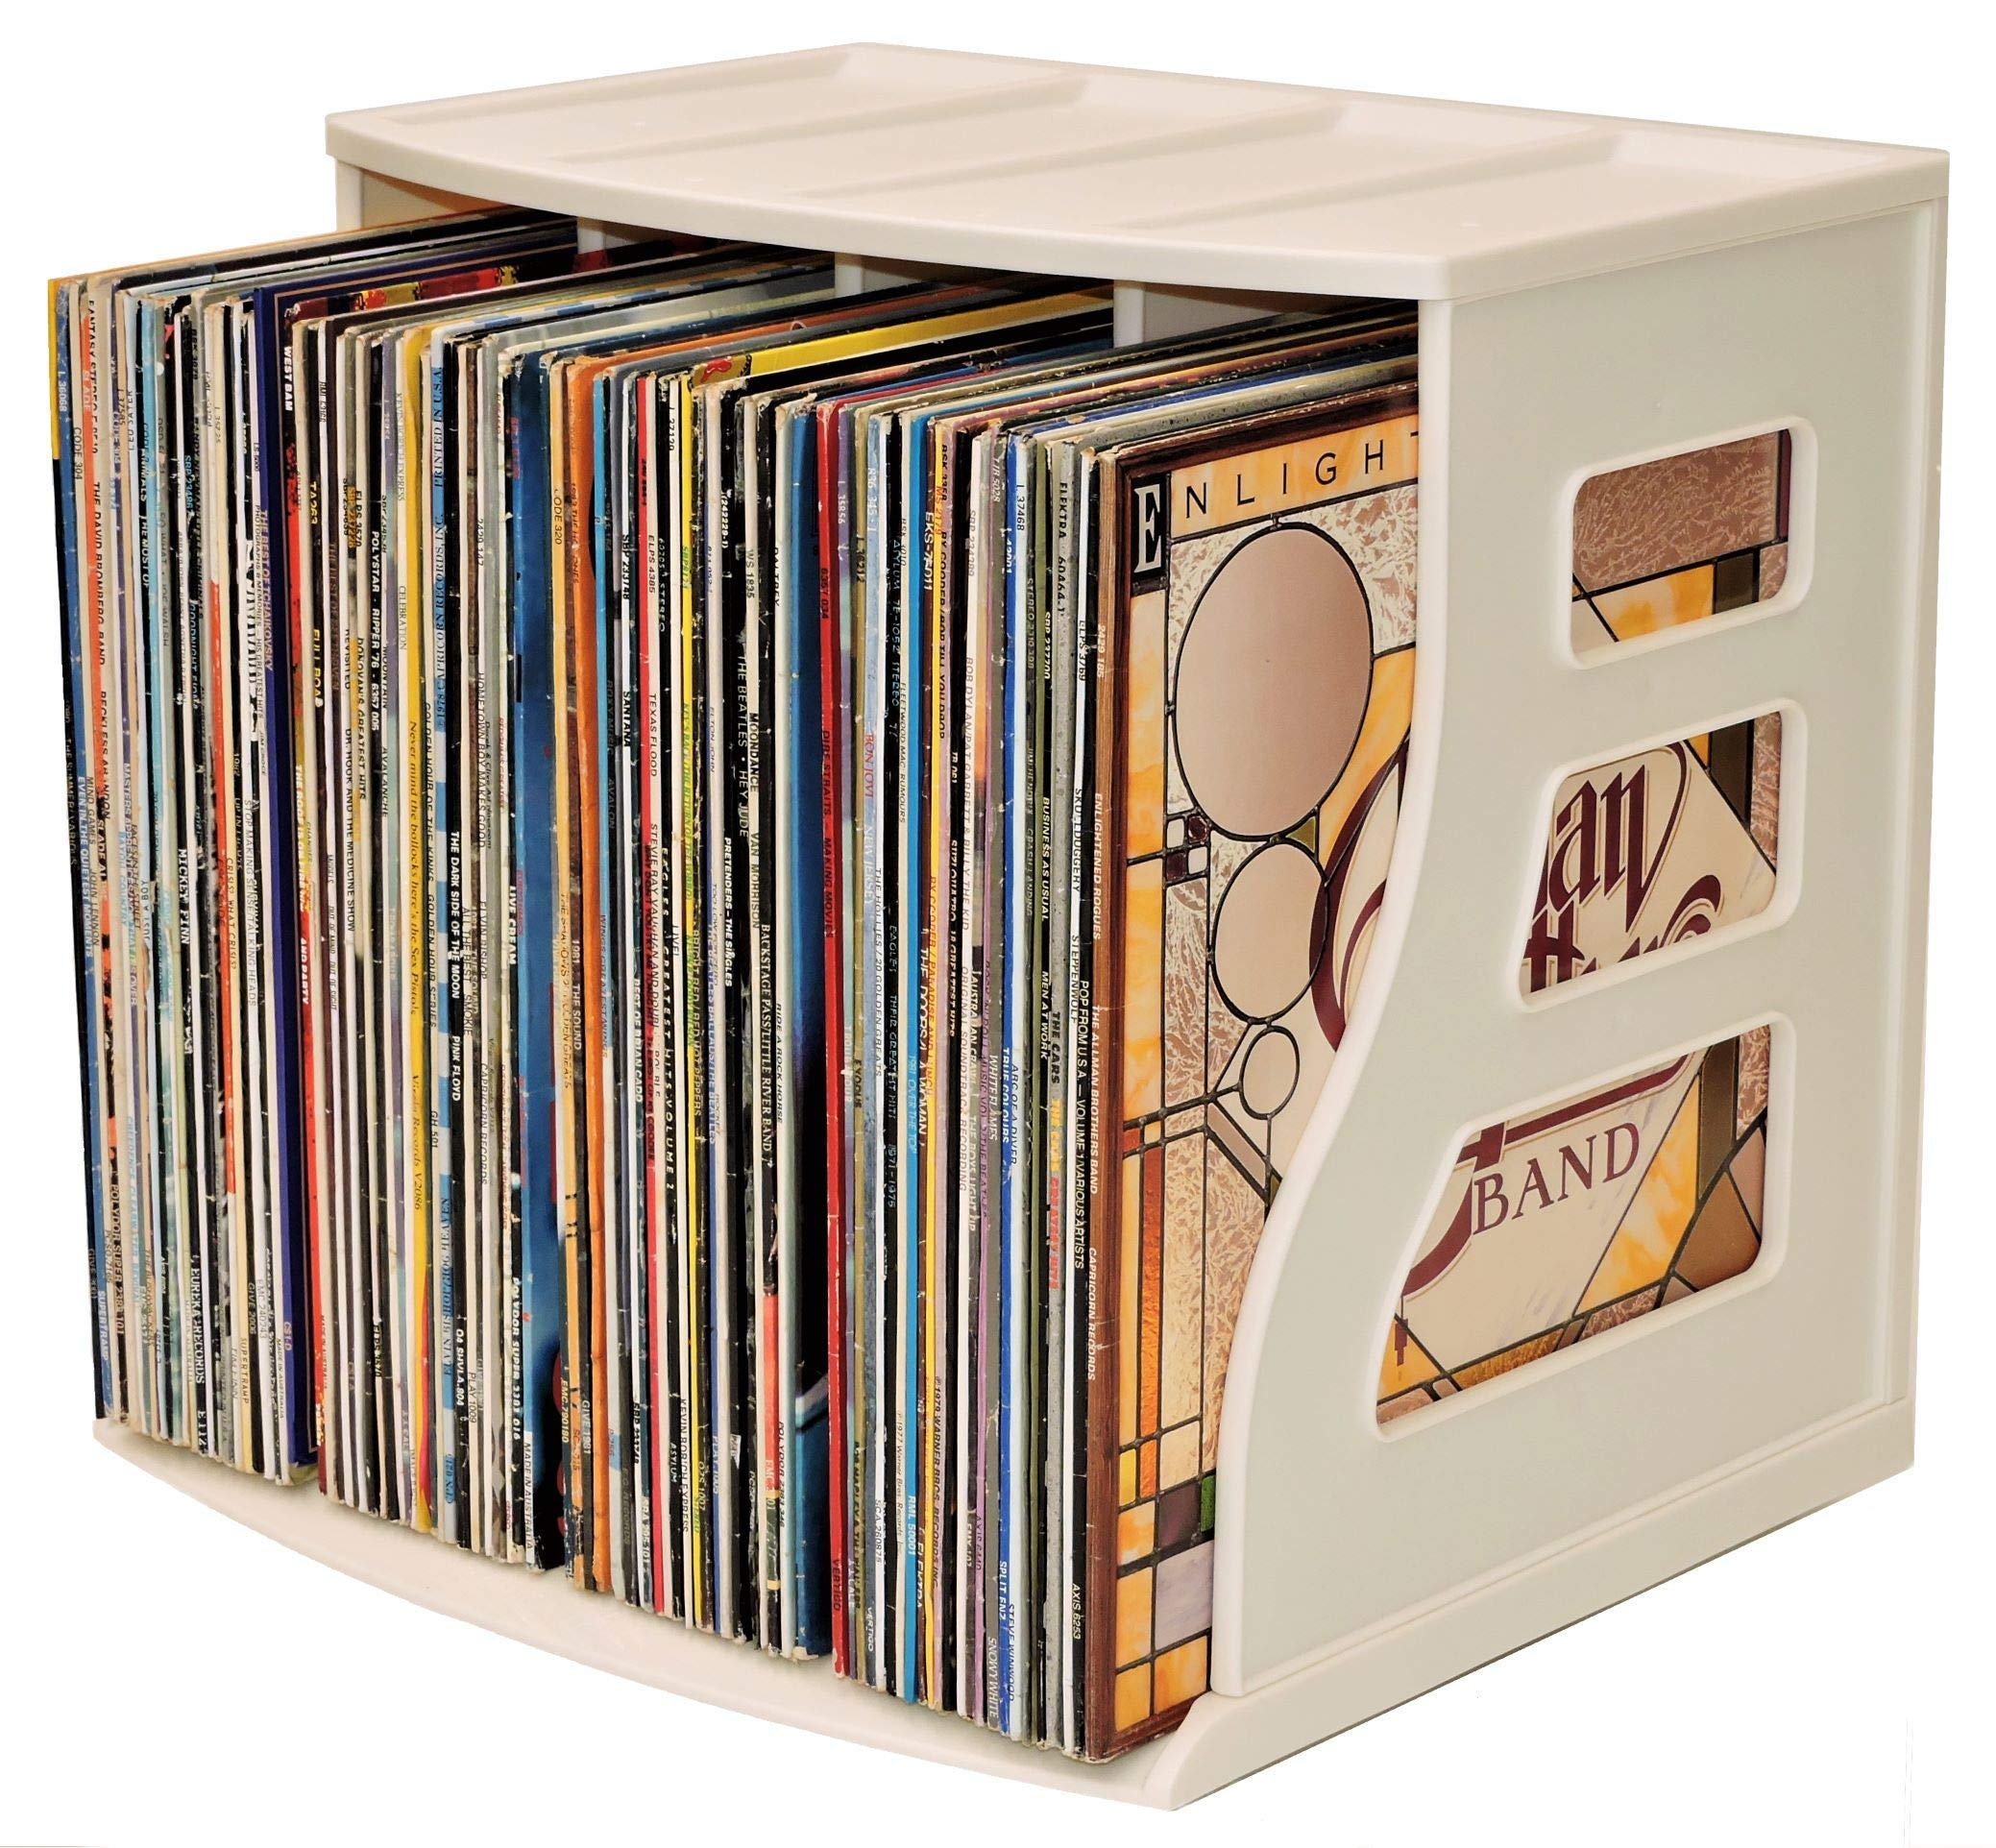 Binder Way 12x12 Paper Storage Rack Case Stackable Scrapbooking Crate  Cardstock Box Vinyl Record Stand Holds Over 70 LP Albums Ring Binder Shelf  Lever Arch ...